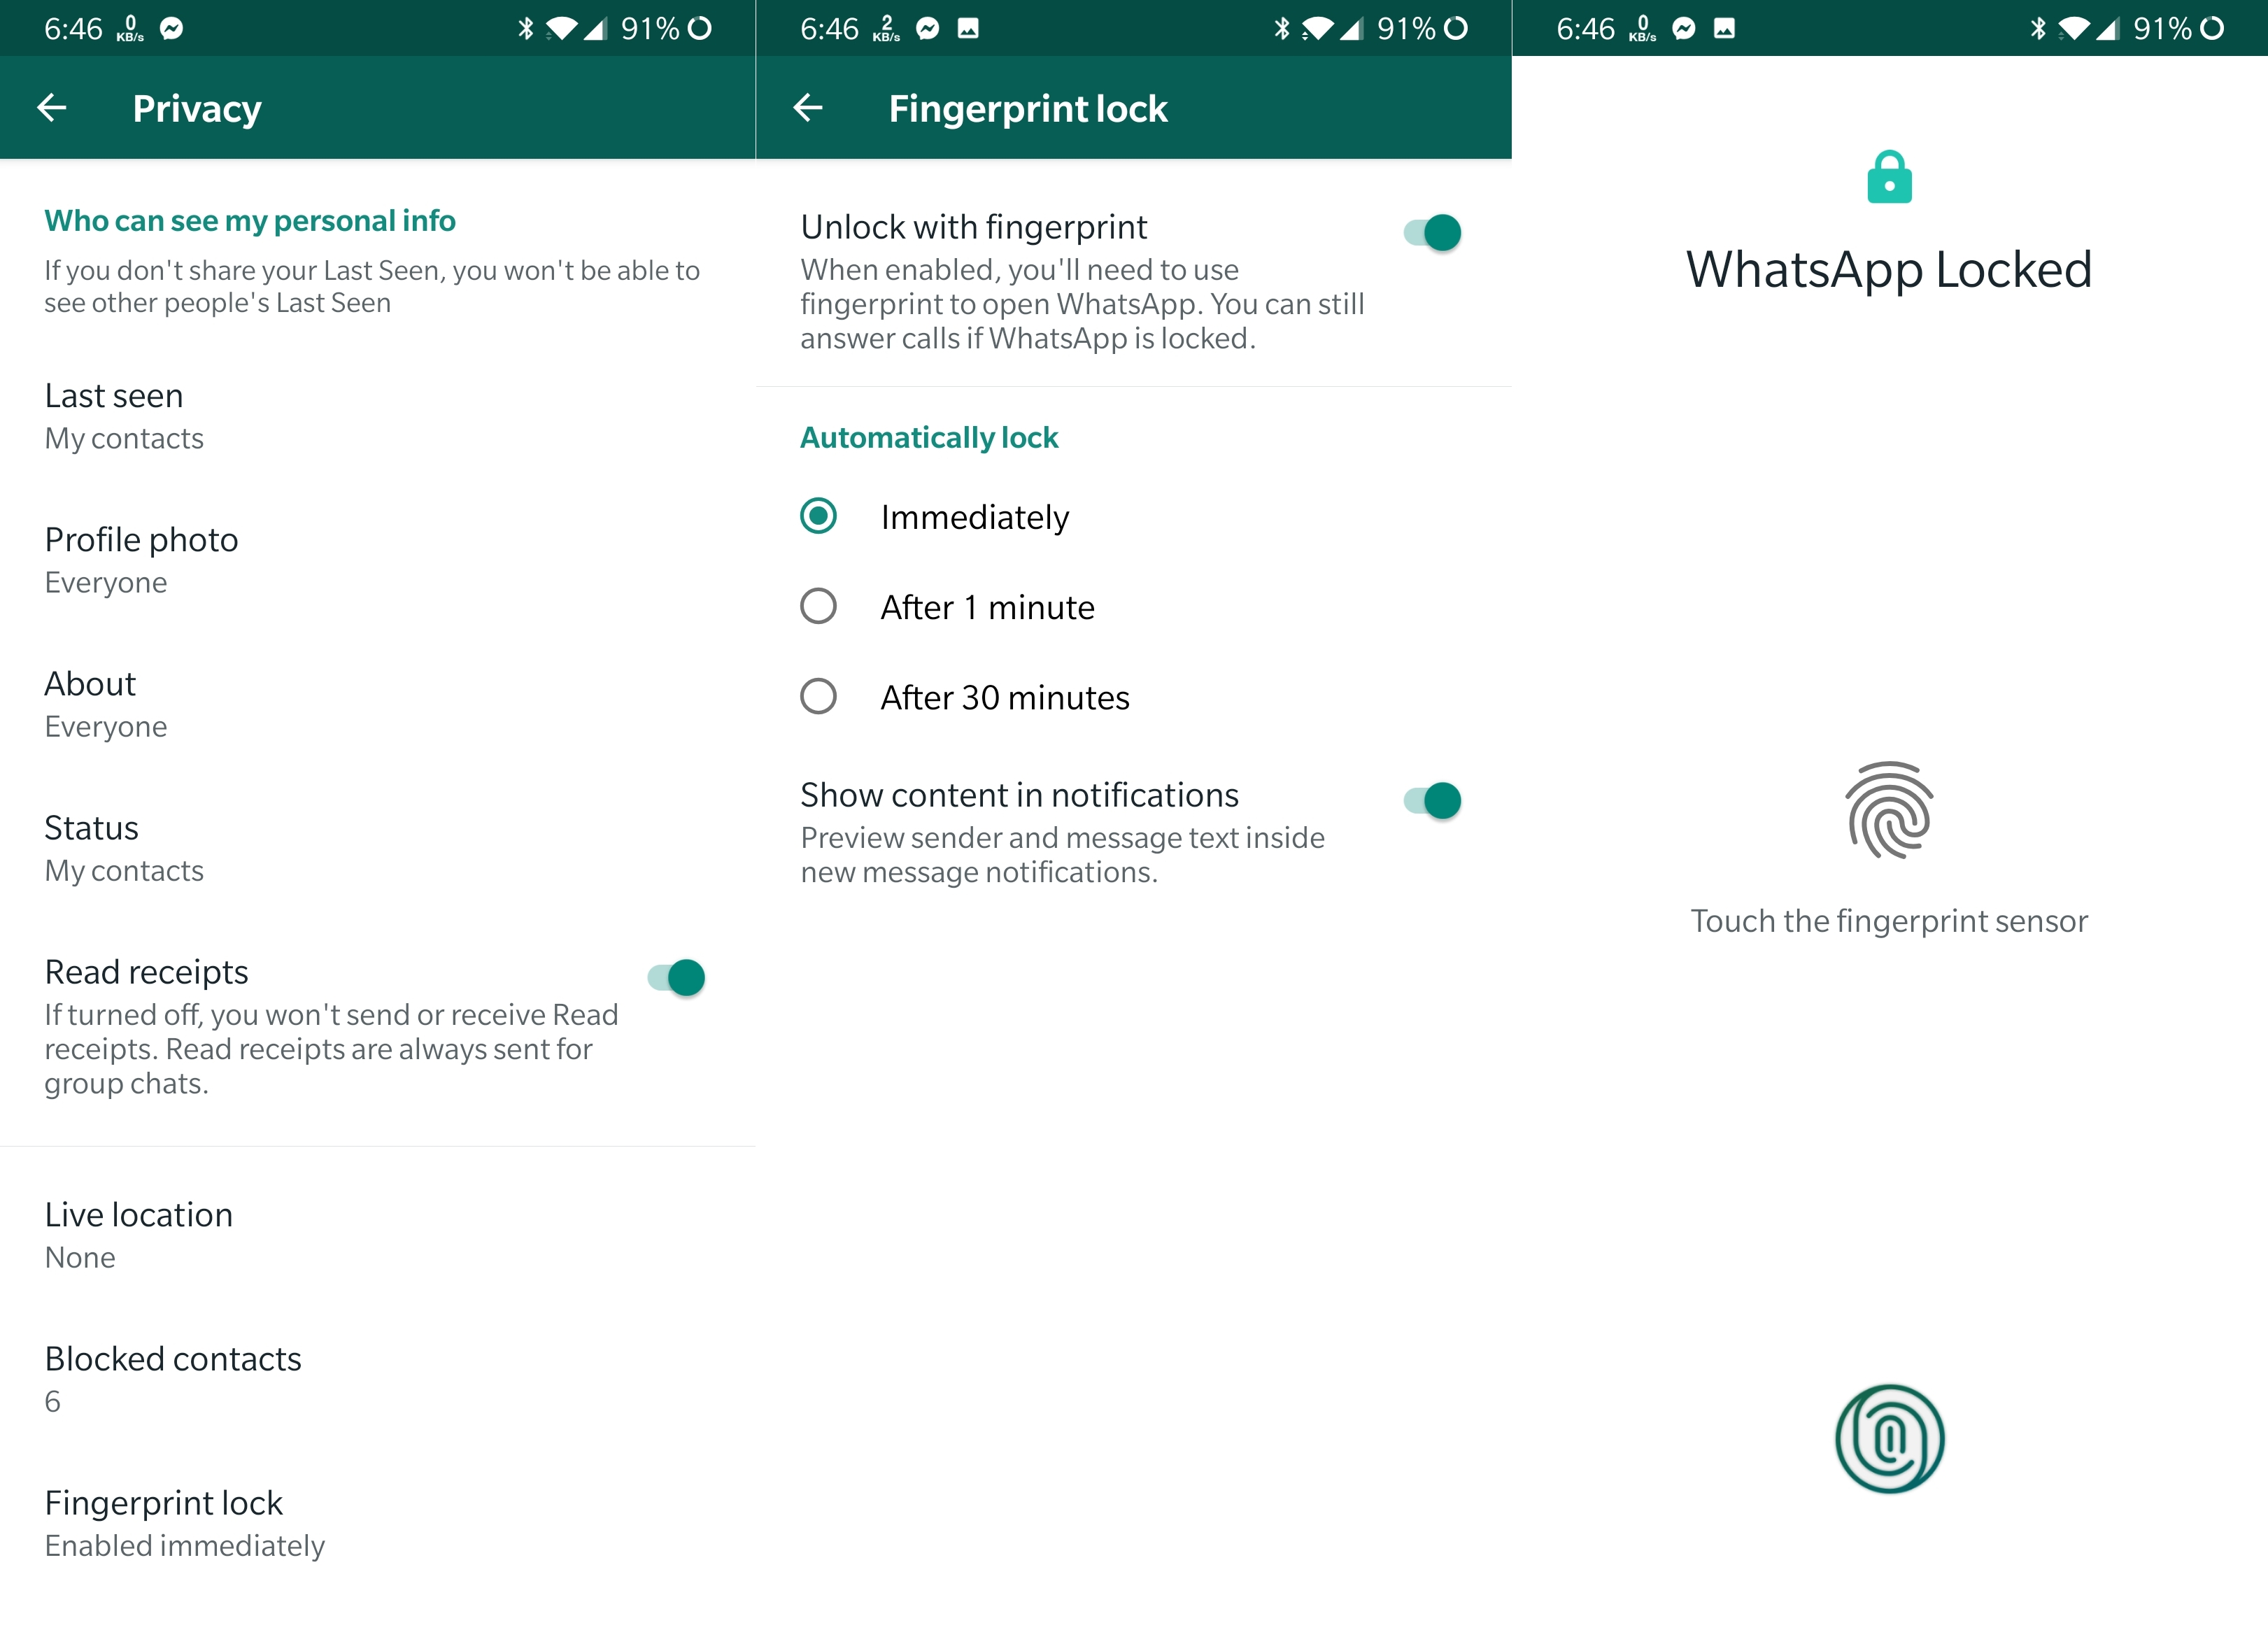 WhatsApp close to adding fingerprint locking feature to Android app